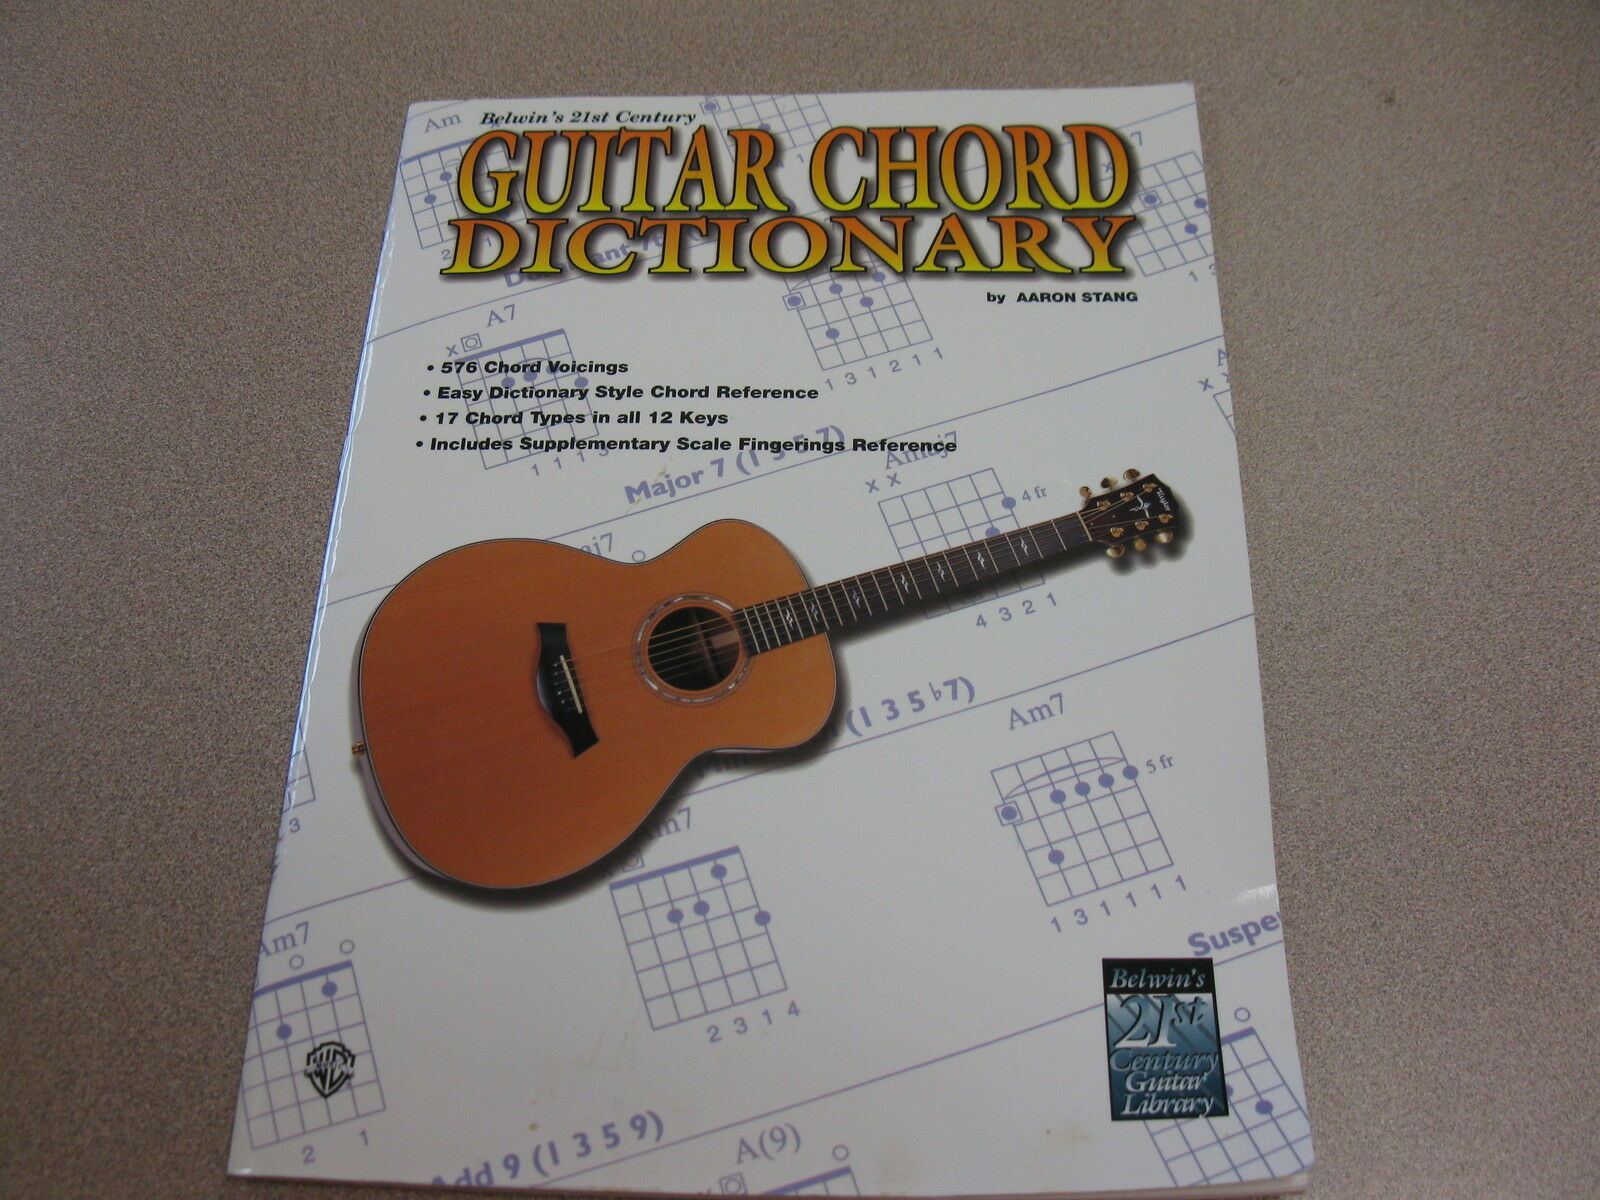 21st Century Guitar Course 21st Century Guitar Chord Dictionary